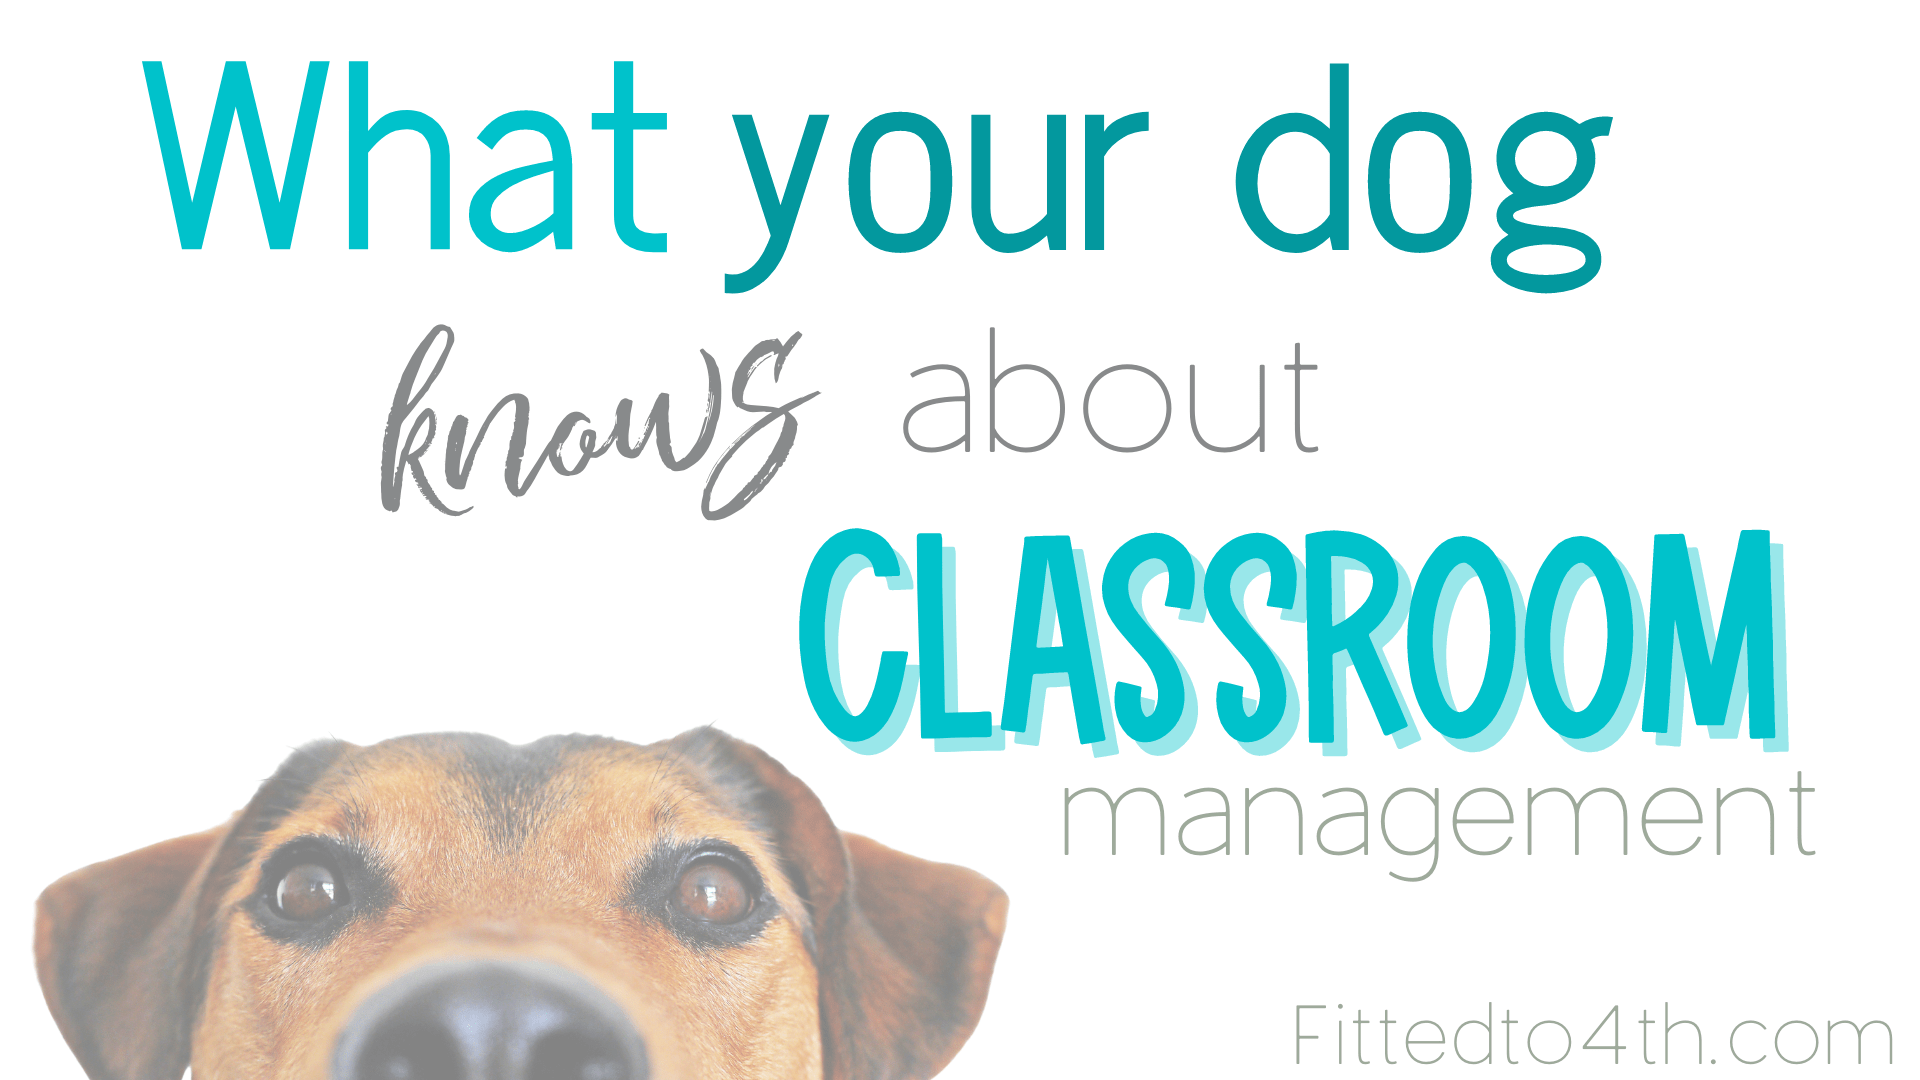 What your dog knows about classroom management.